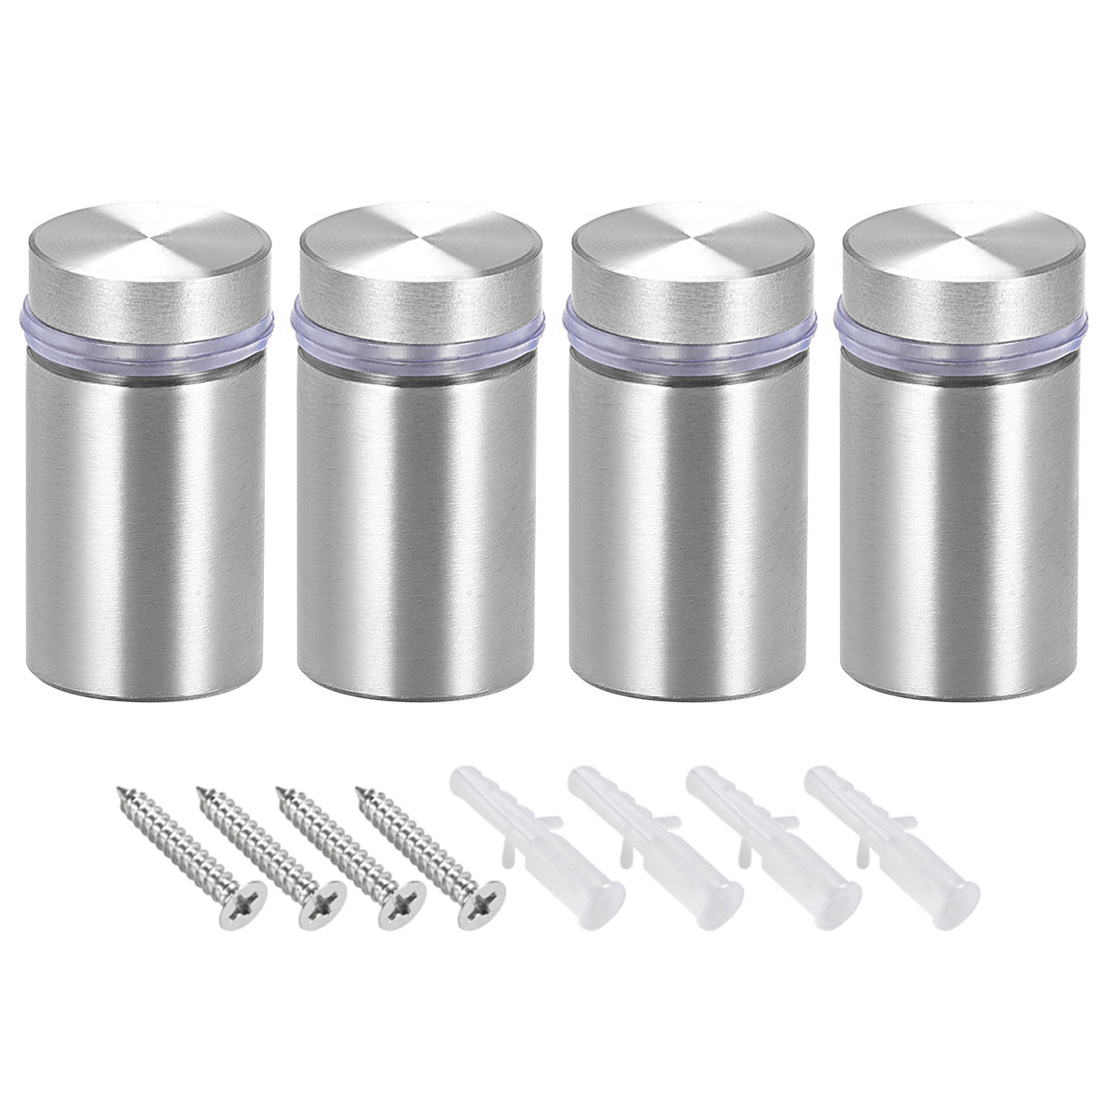 Glass Standoff Mount Solid Stainless Steel Wall Standoff Holder 25mmx43mm 4 Pcs